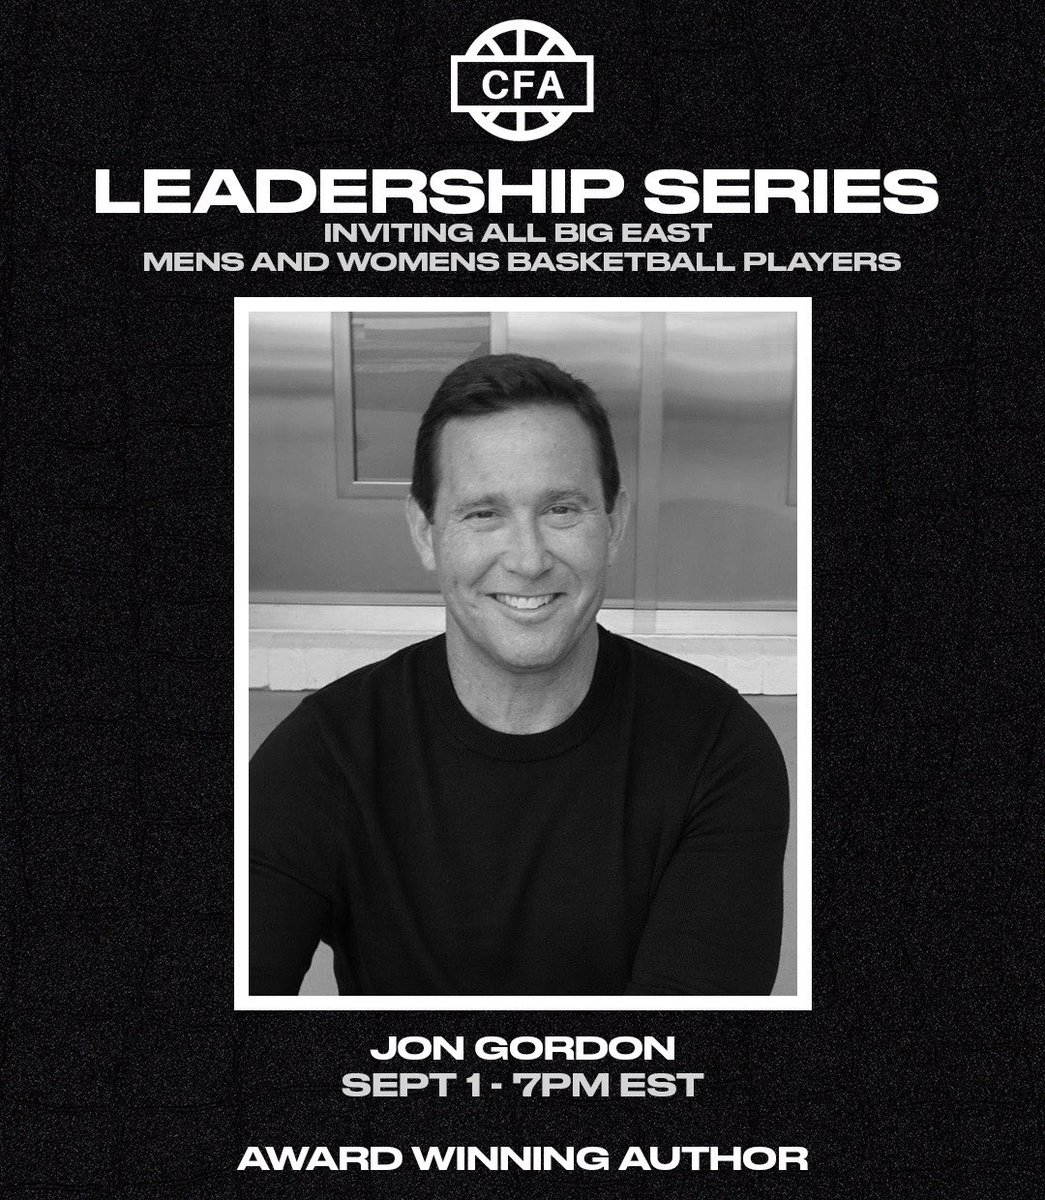 We are so excited to host @JonGordon11 for our first leadership session. Our members and players will have a great opportunity to learn and grow, as they prepare to lead this season on and off the court.